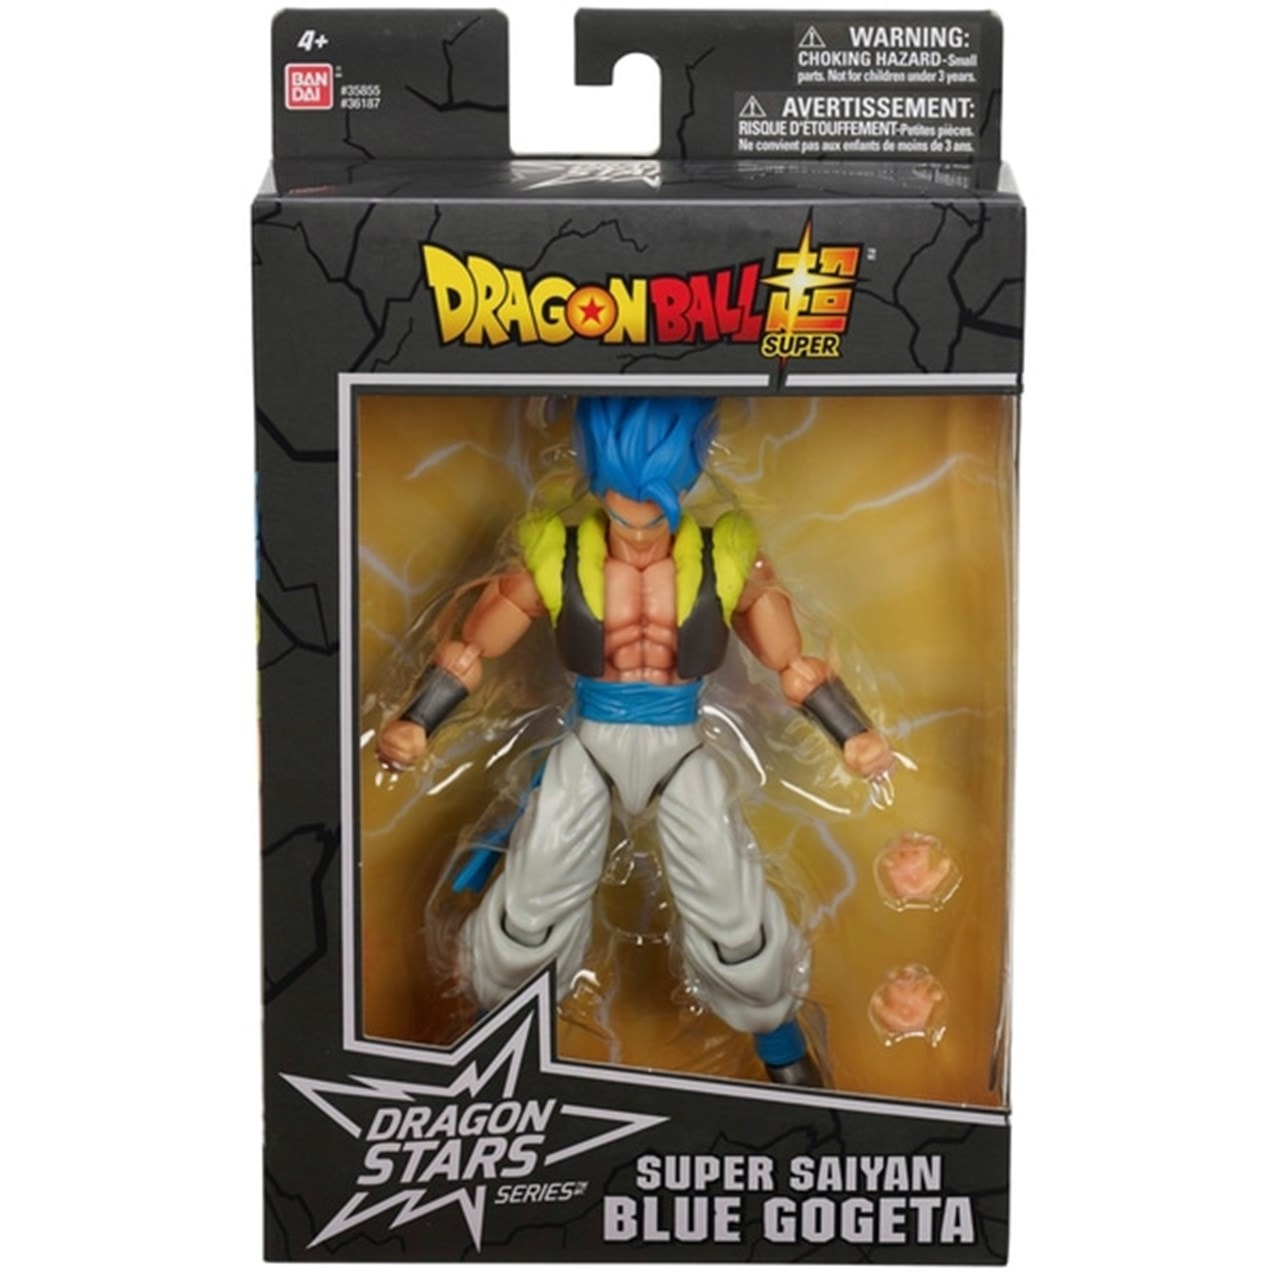 Blue Gogeta: Dragon Ball Stars Action Figure - 5